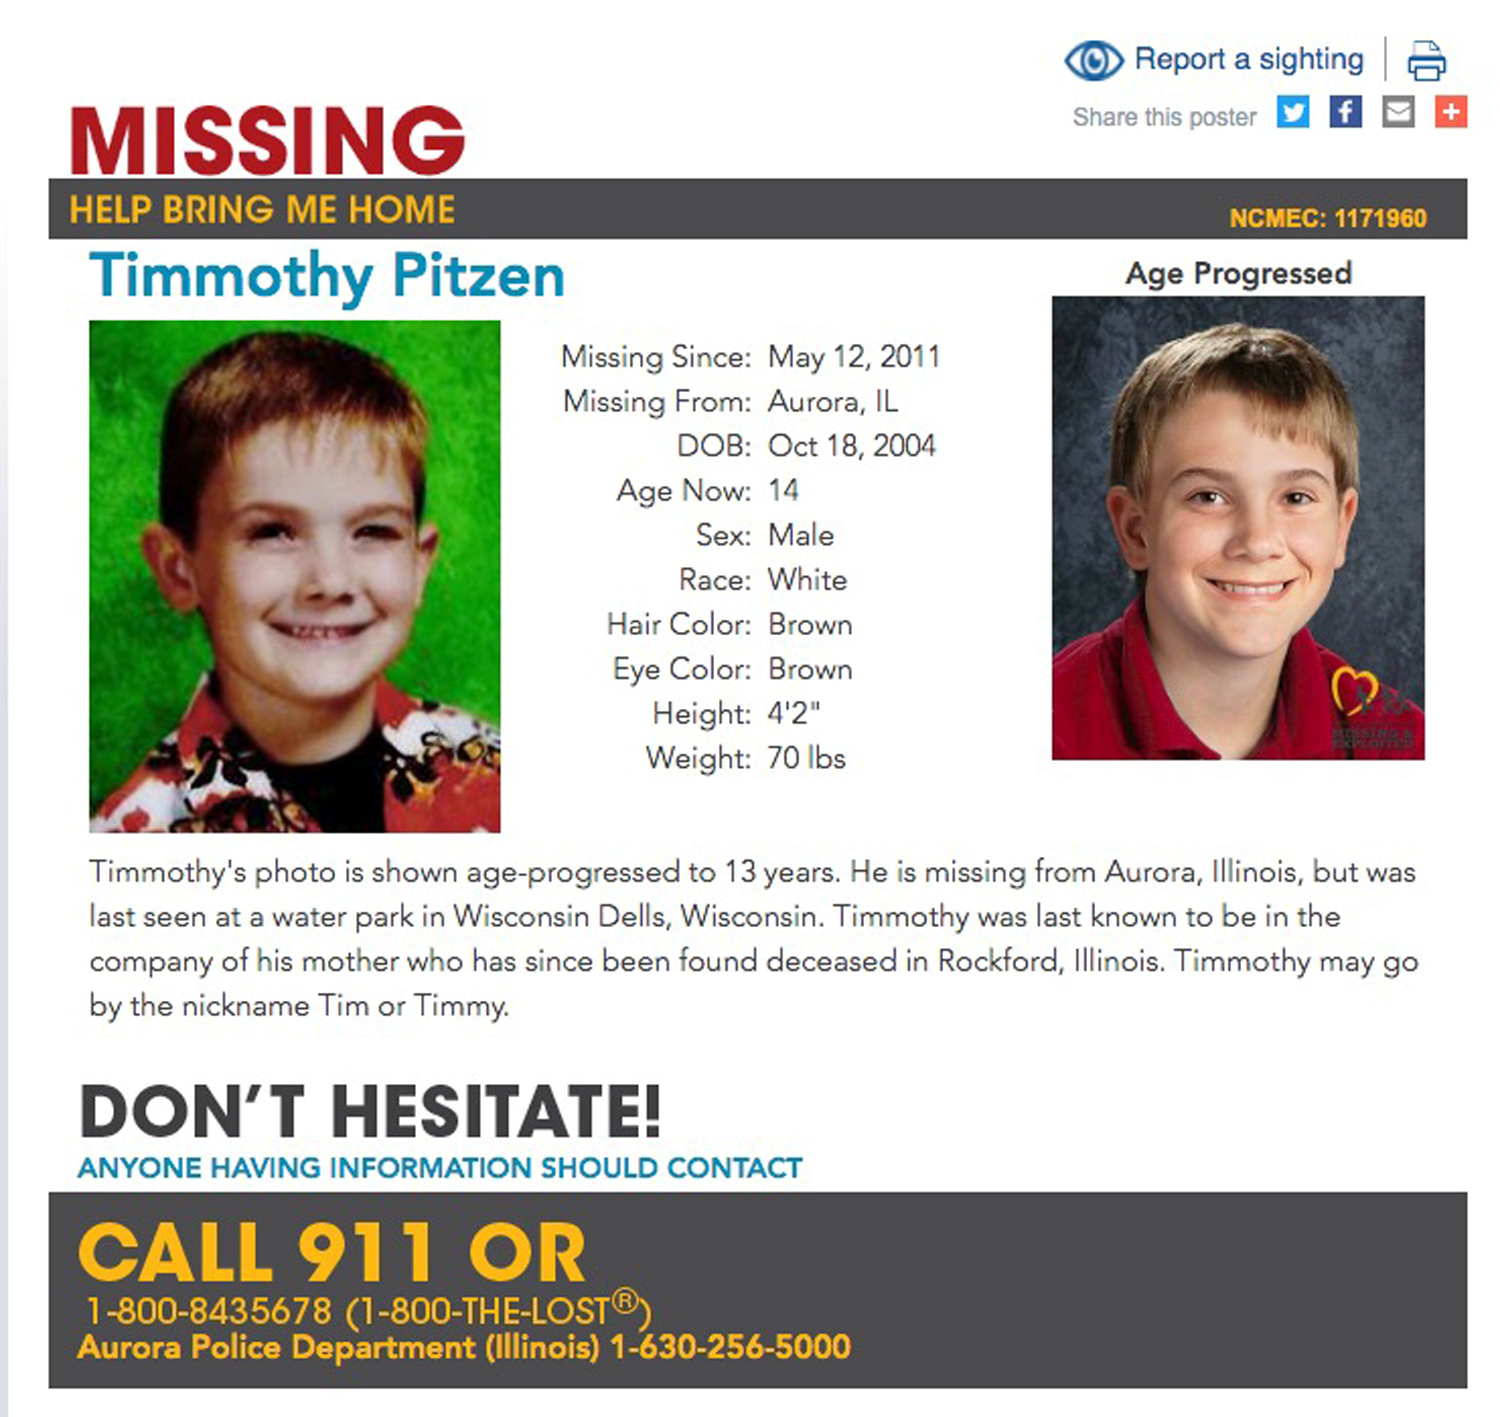 Timmothy Pitzen, missing since May 12, 2011, is shown in both an undated photo and a rendition of what he may look like at age 13 on a poster obtained by Reuters April 4, 2019. National Center for Missing & Exploited Children/Handout via REUTERS